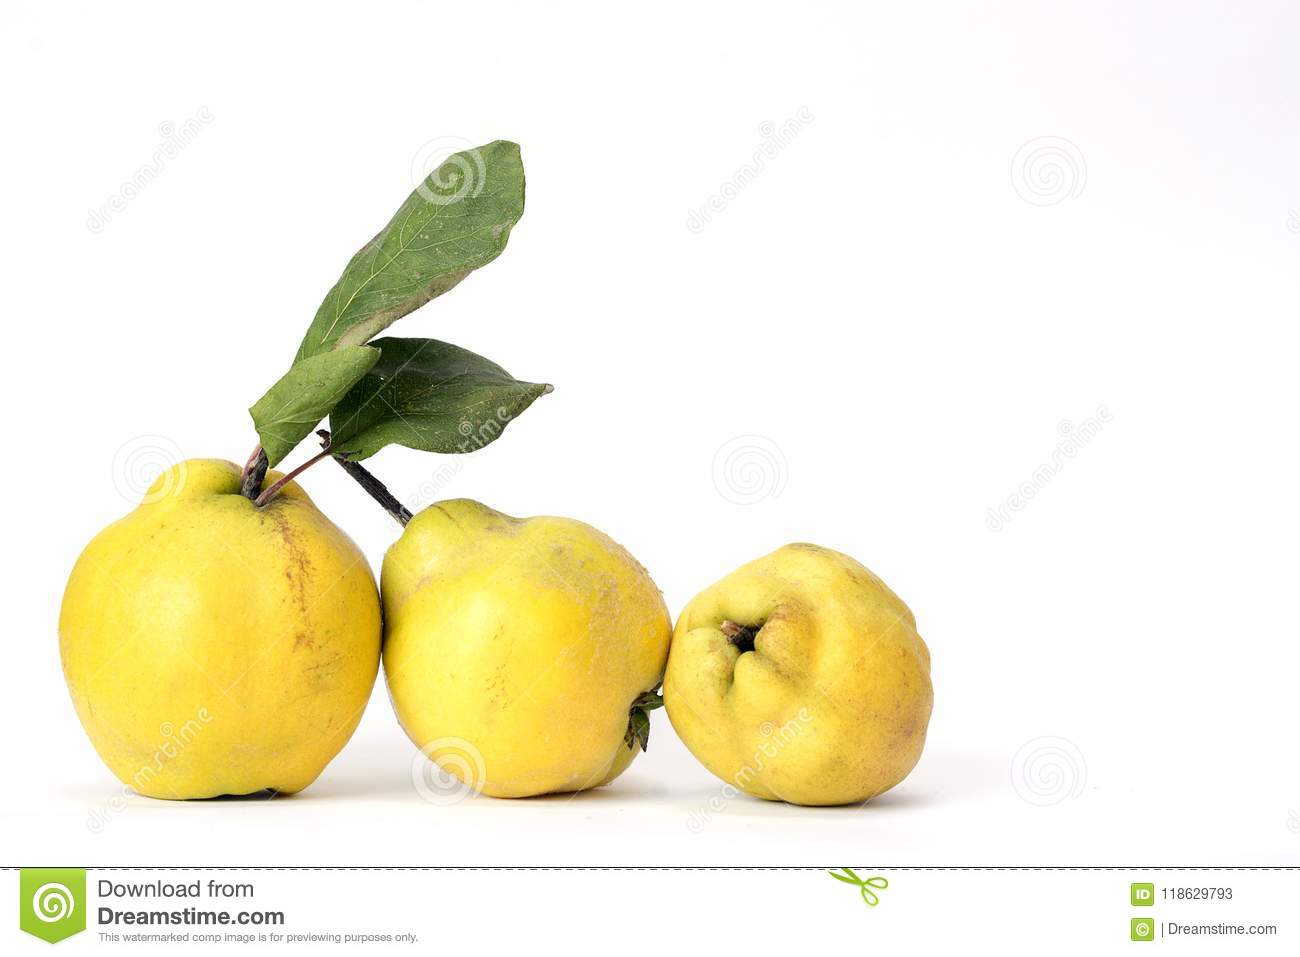 Row of three quinces, an old and traditional kind of fruit, similar to apples and pears